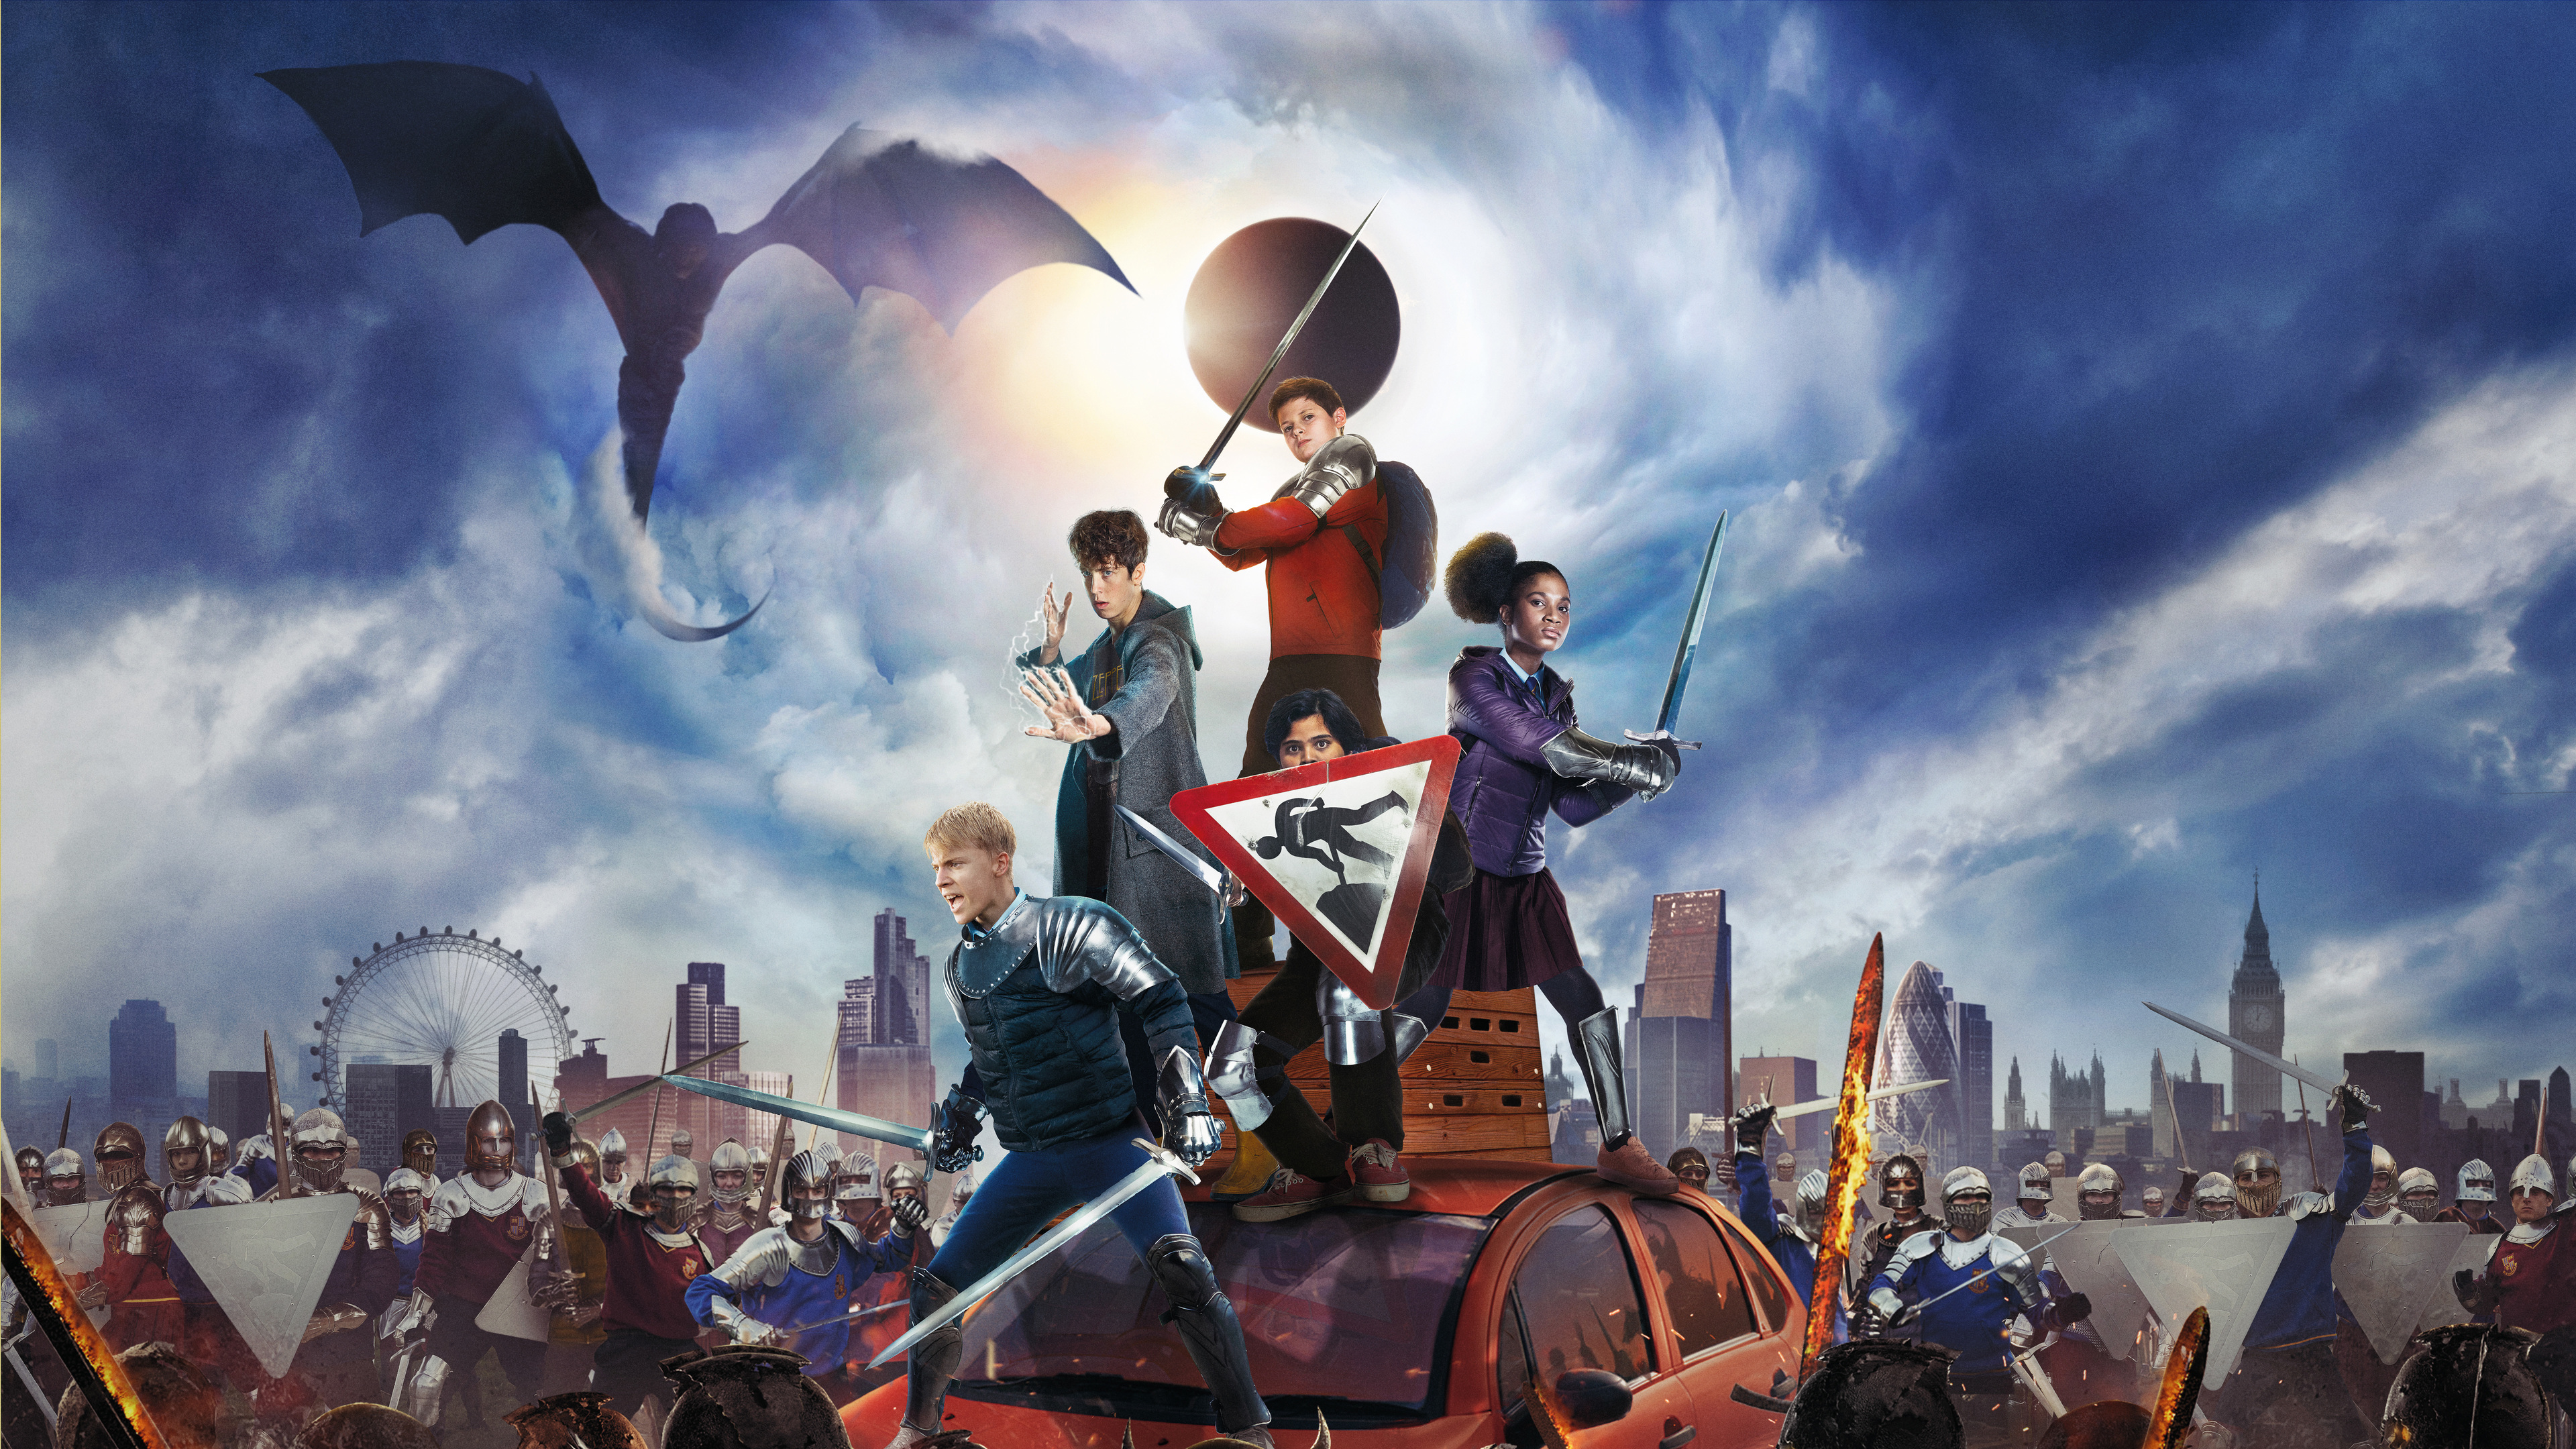 the kid who would be king 4k 1558220202 - The Kid Who Would Be King 4k - the kid who would be king wallpapers, movies wallpapers, hd-wallpapers, 4k-wallpapers, 2019 movies wallpapers